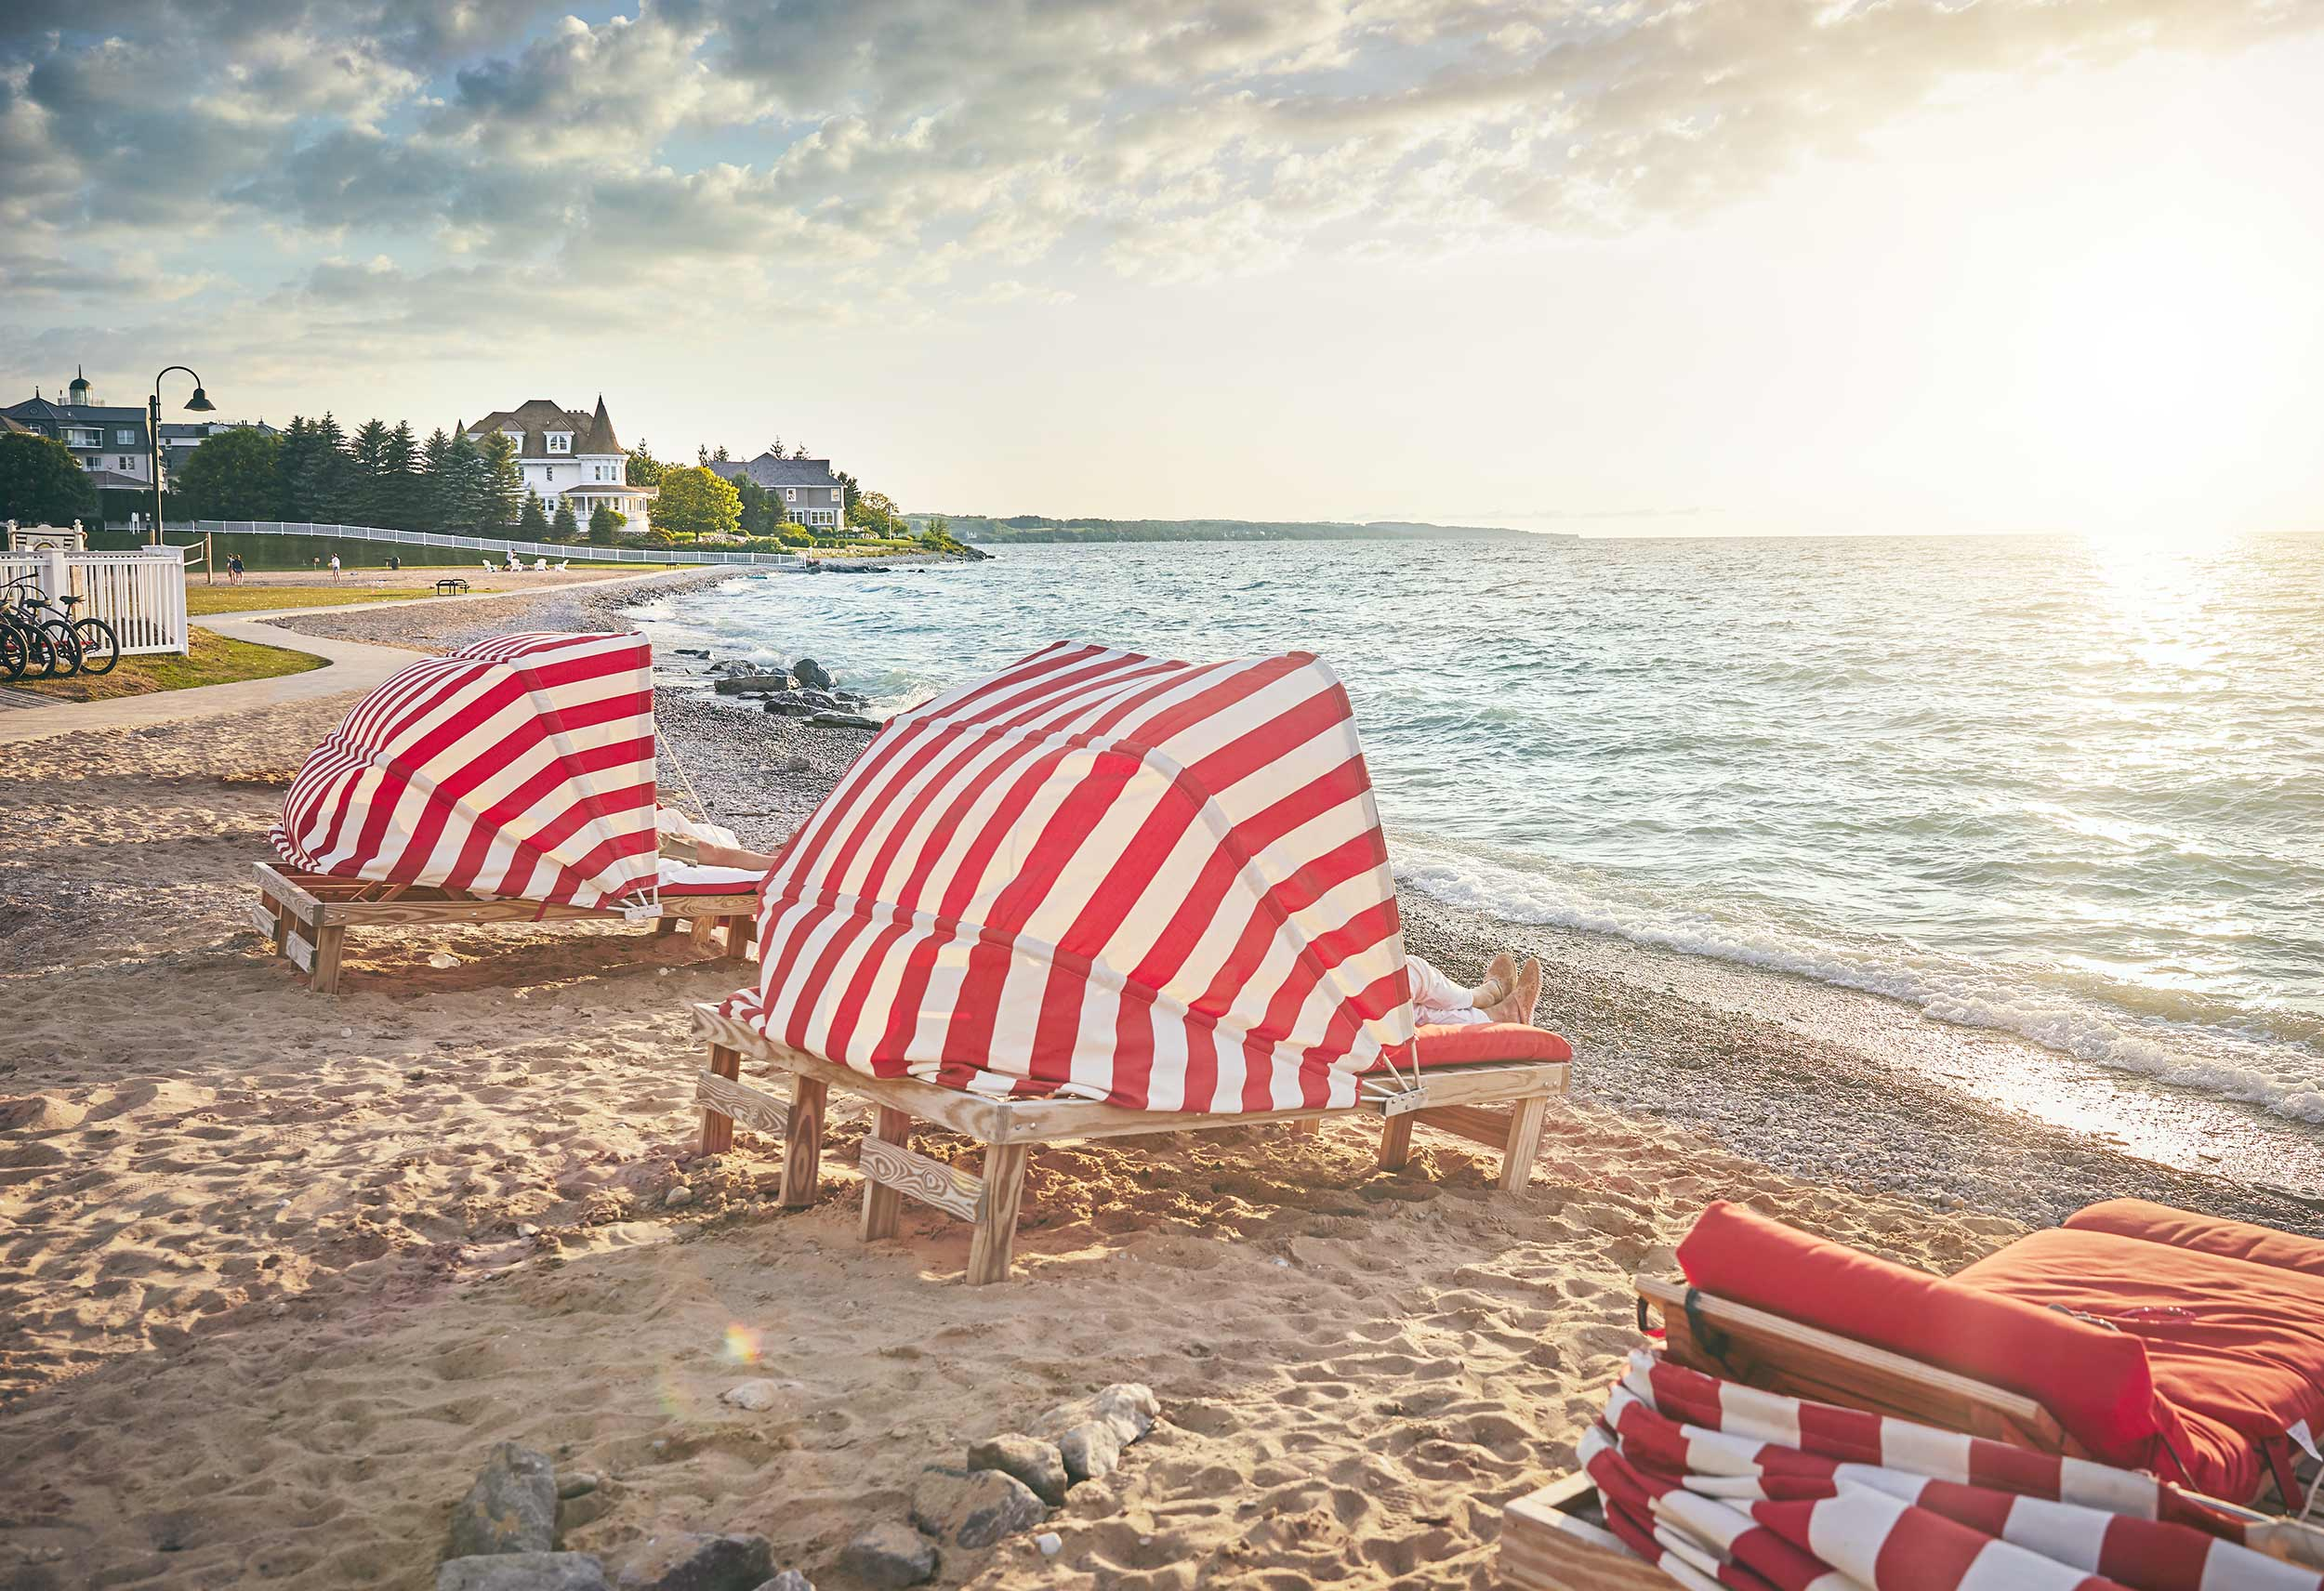 Marriott-Lake-Michigan-Jeremy-Frechette.jpg